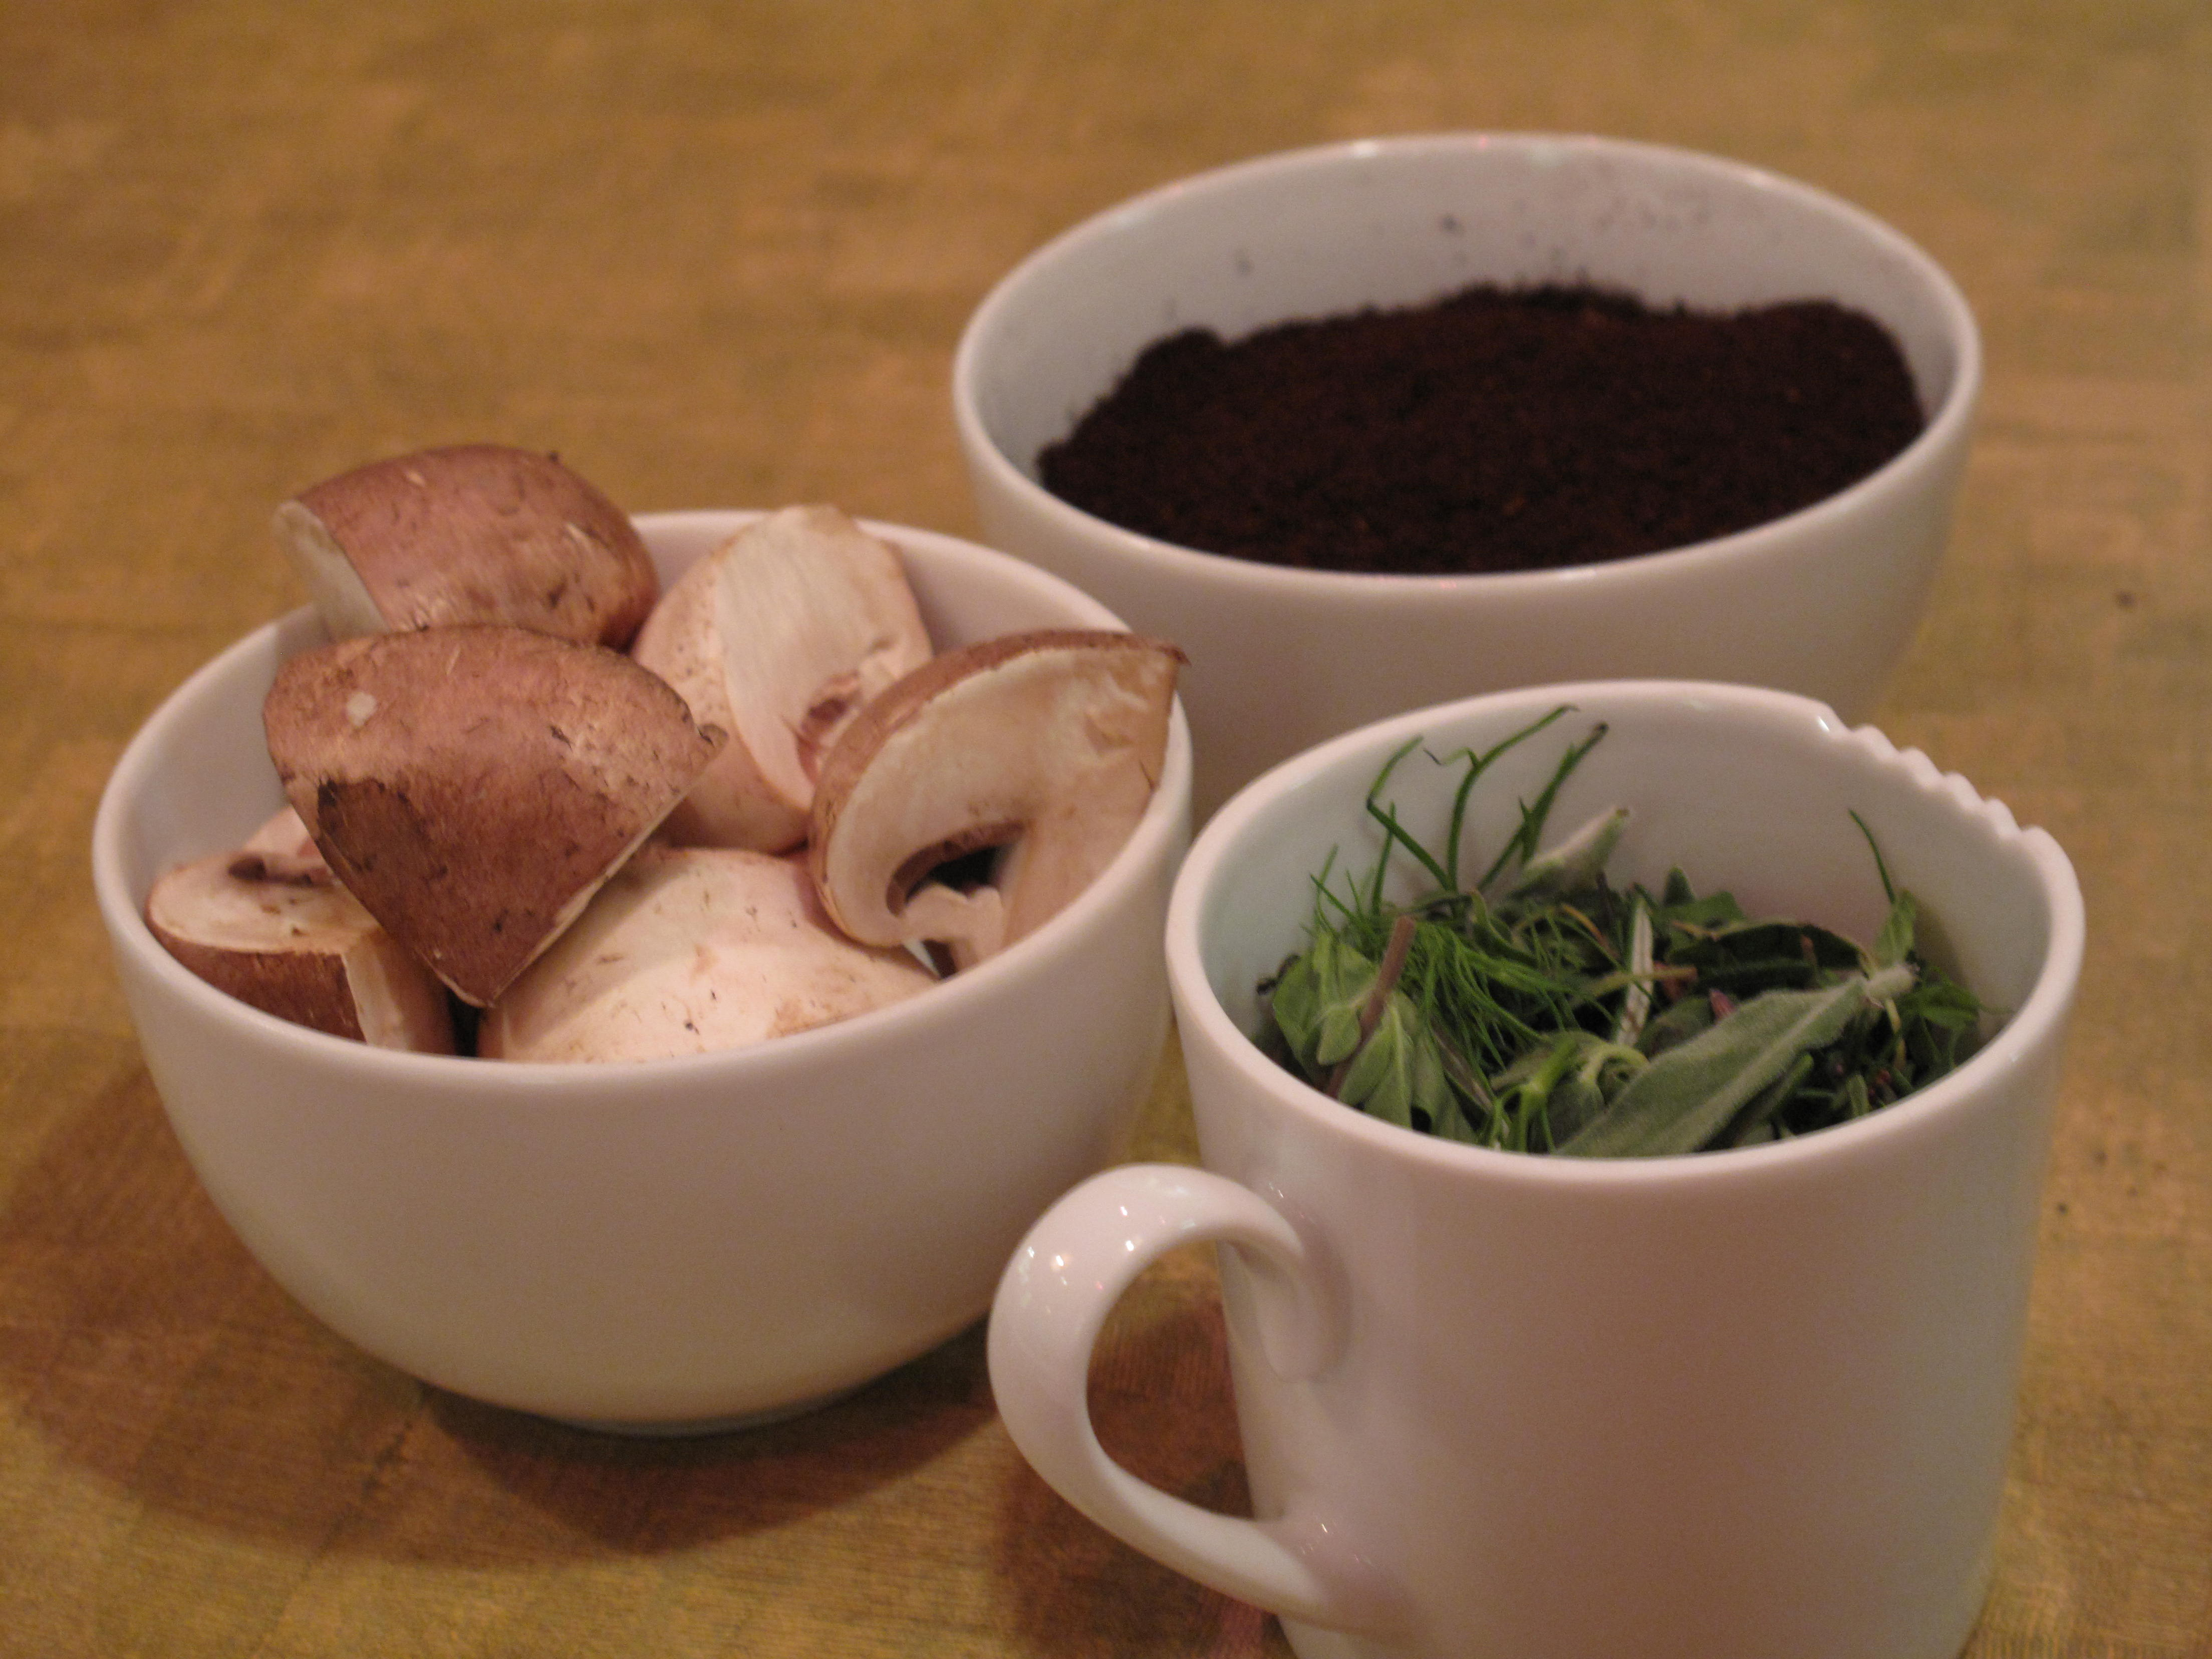 For educational purposes, we were given sensory references such as cremini mushrooms and herbes de Provence to compare with the coffee's flavor profile.